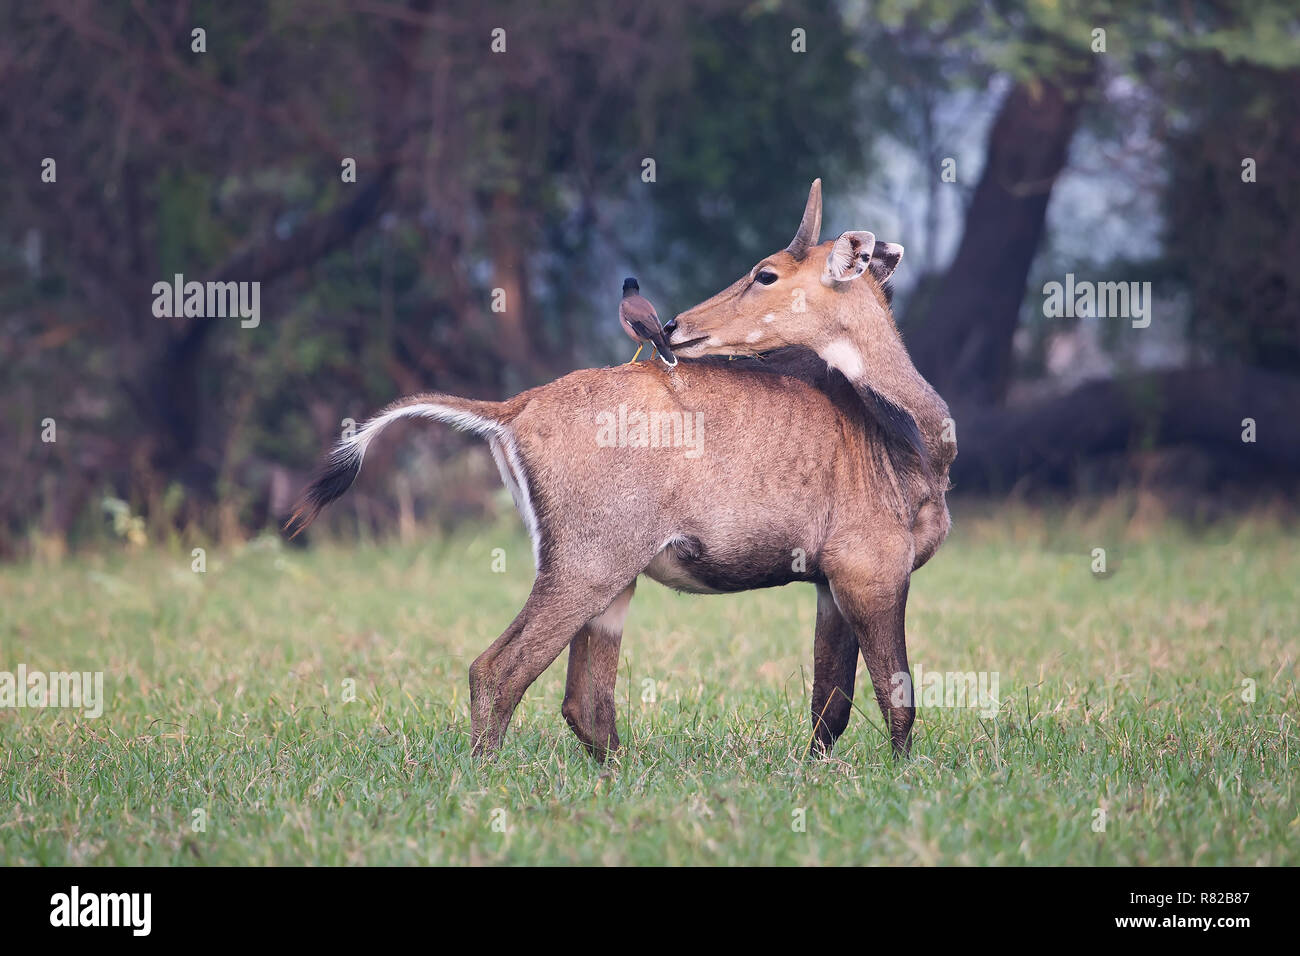 Male Nilgai with Brahminy myna sitting on him in Keoladeo National Park, Bharatpur, India. Nilgai is the largest Asian antelope and is endemic to the  - Stock Image